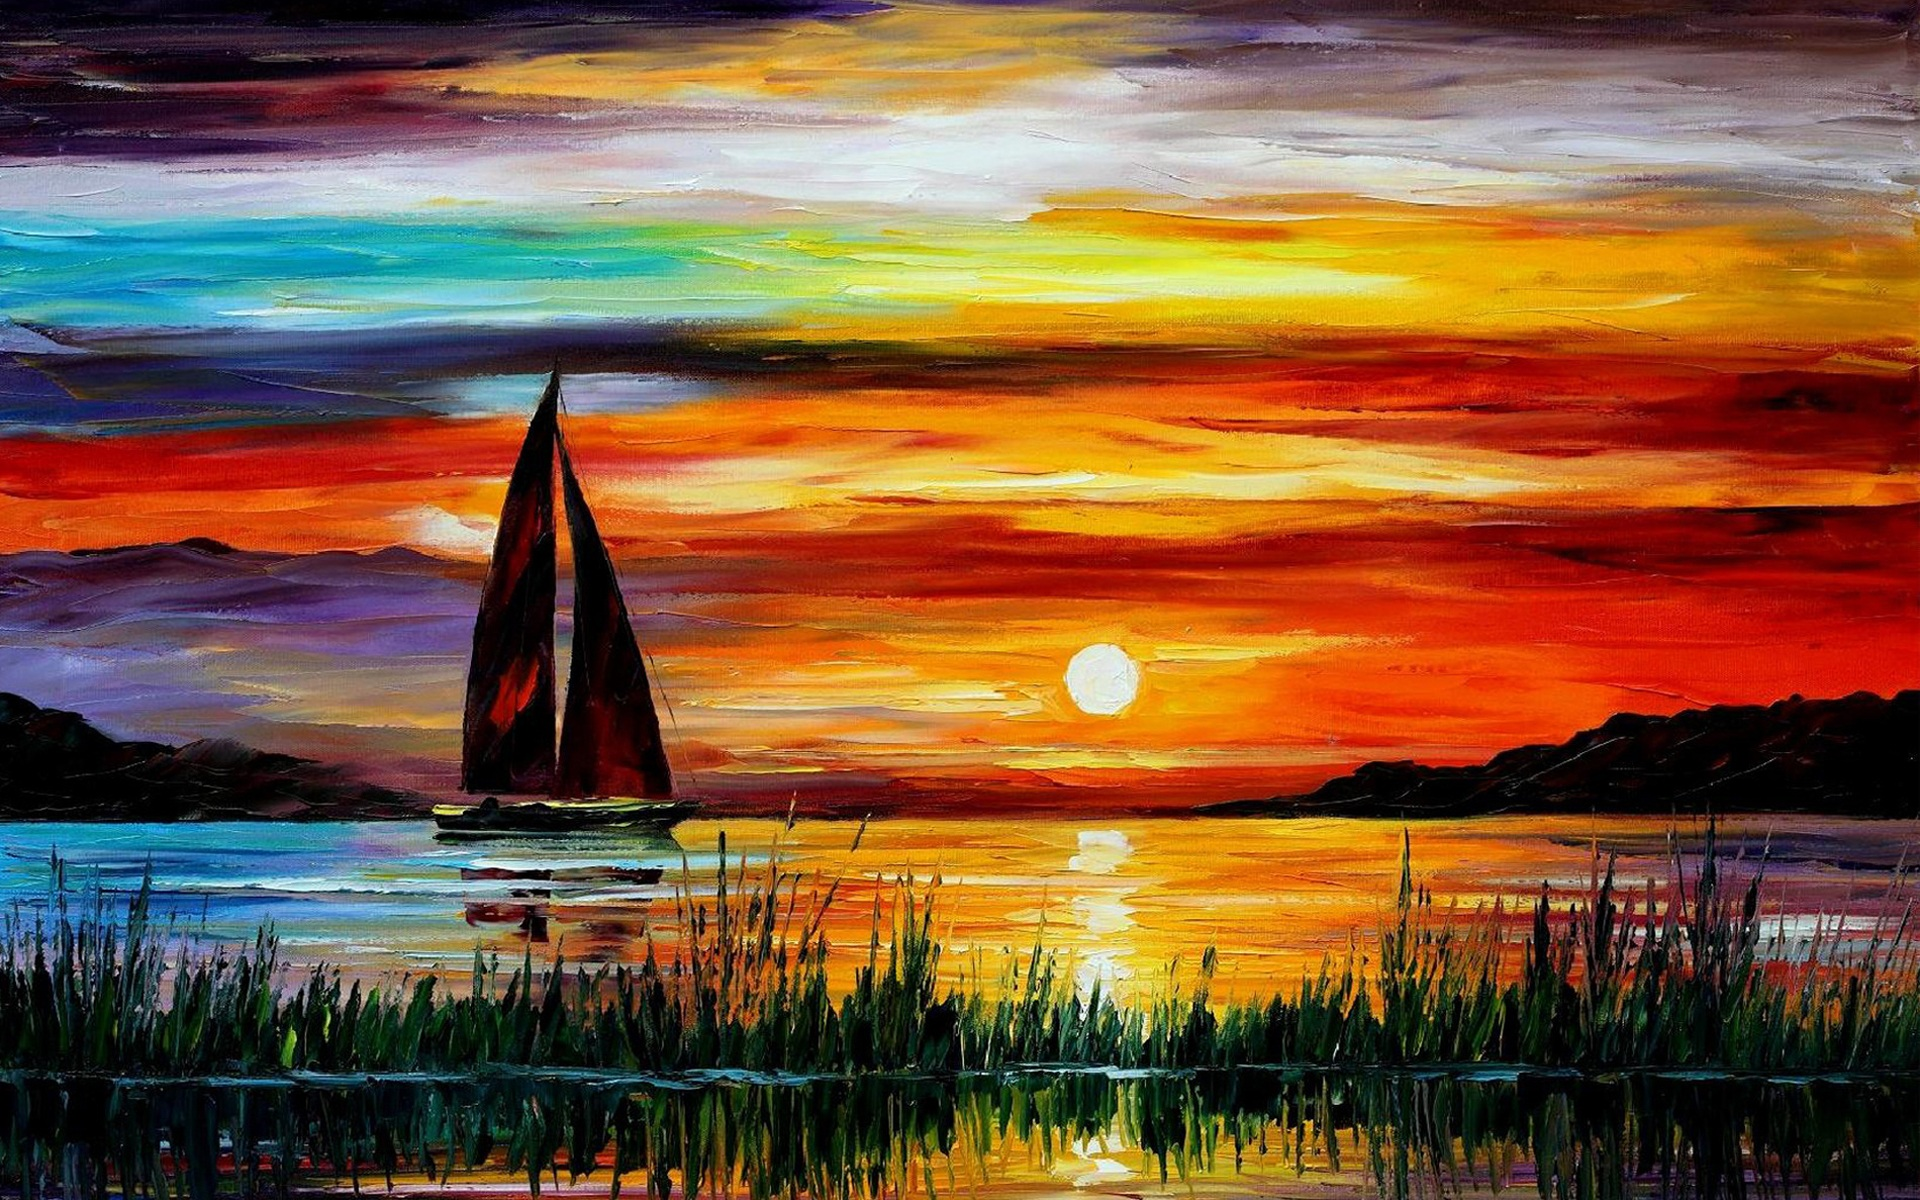 Sunset Boat Painting Wallpaper 50548